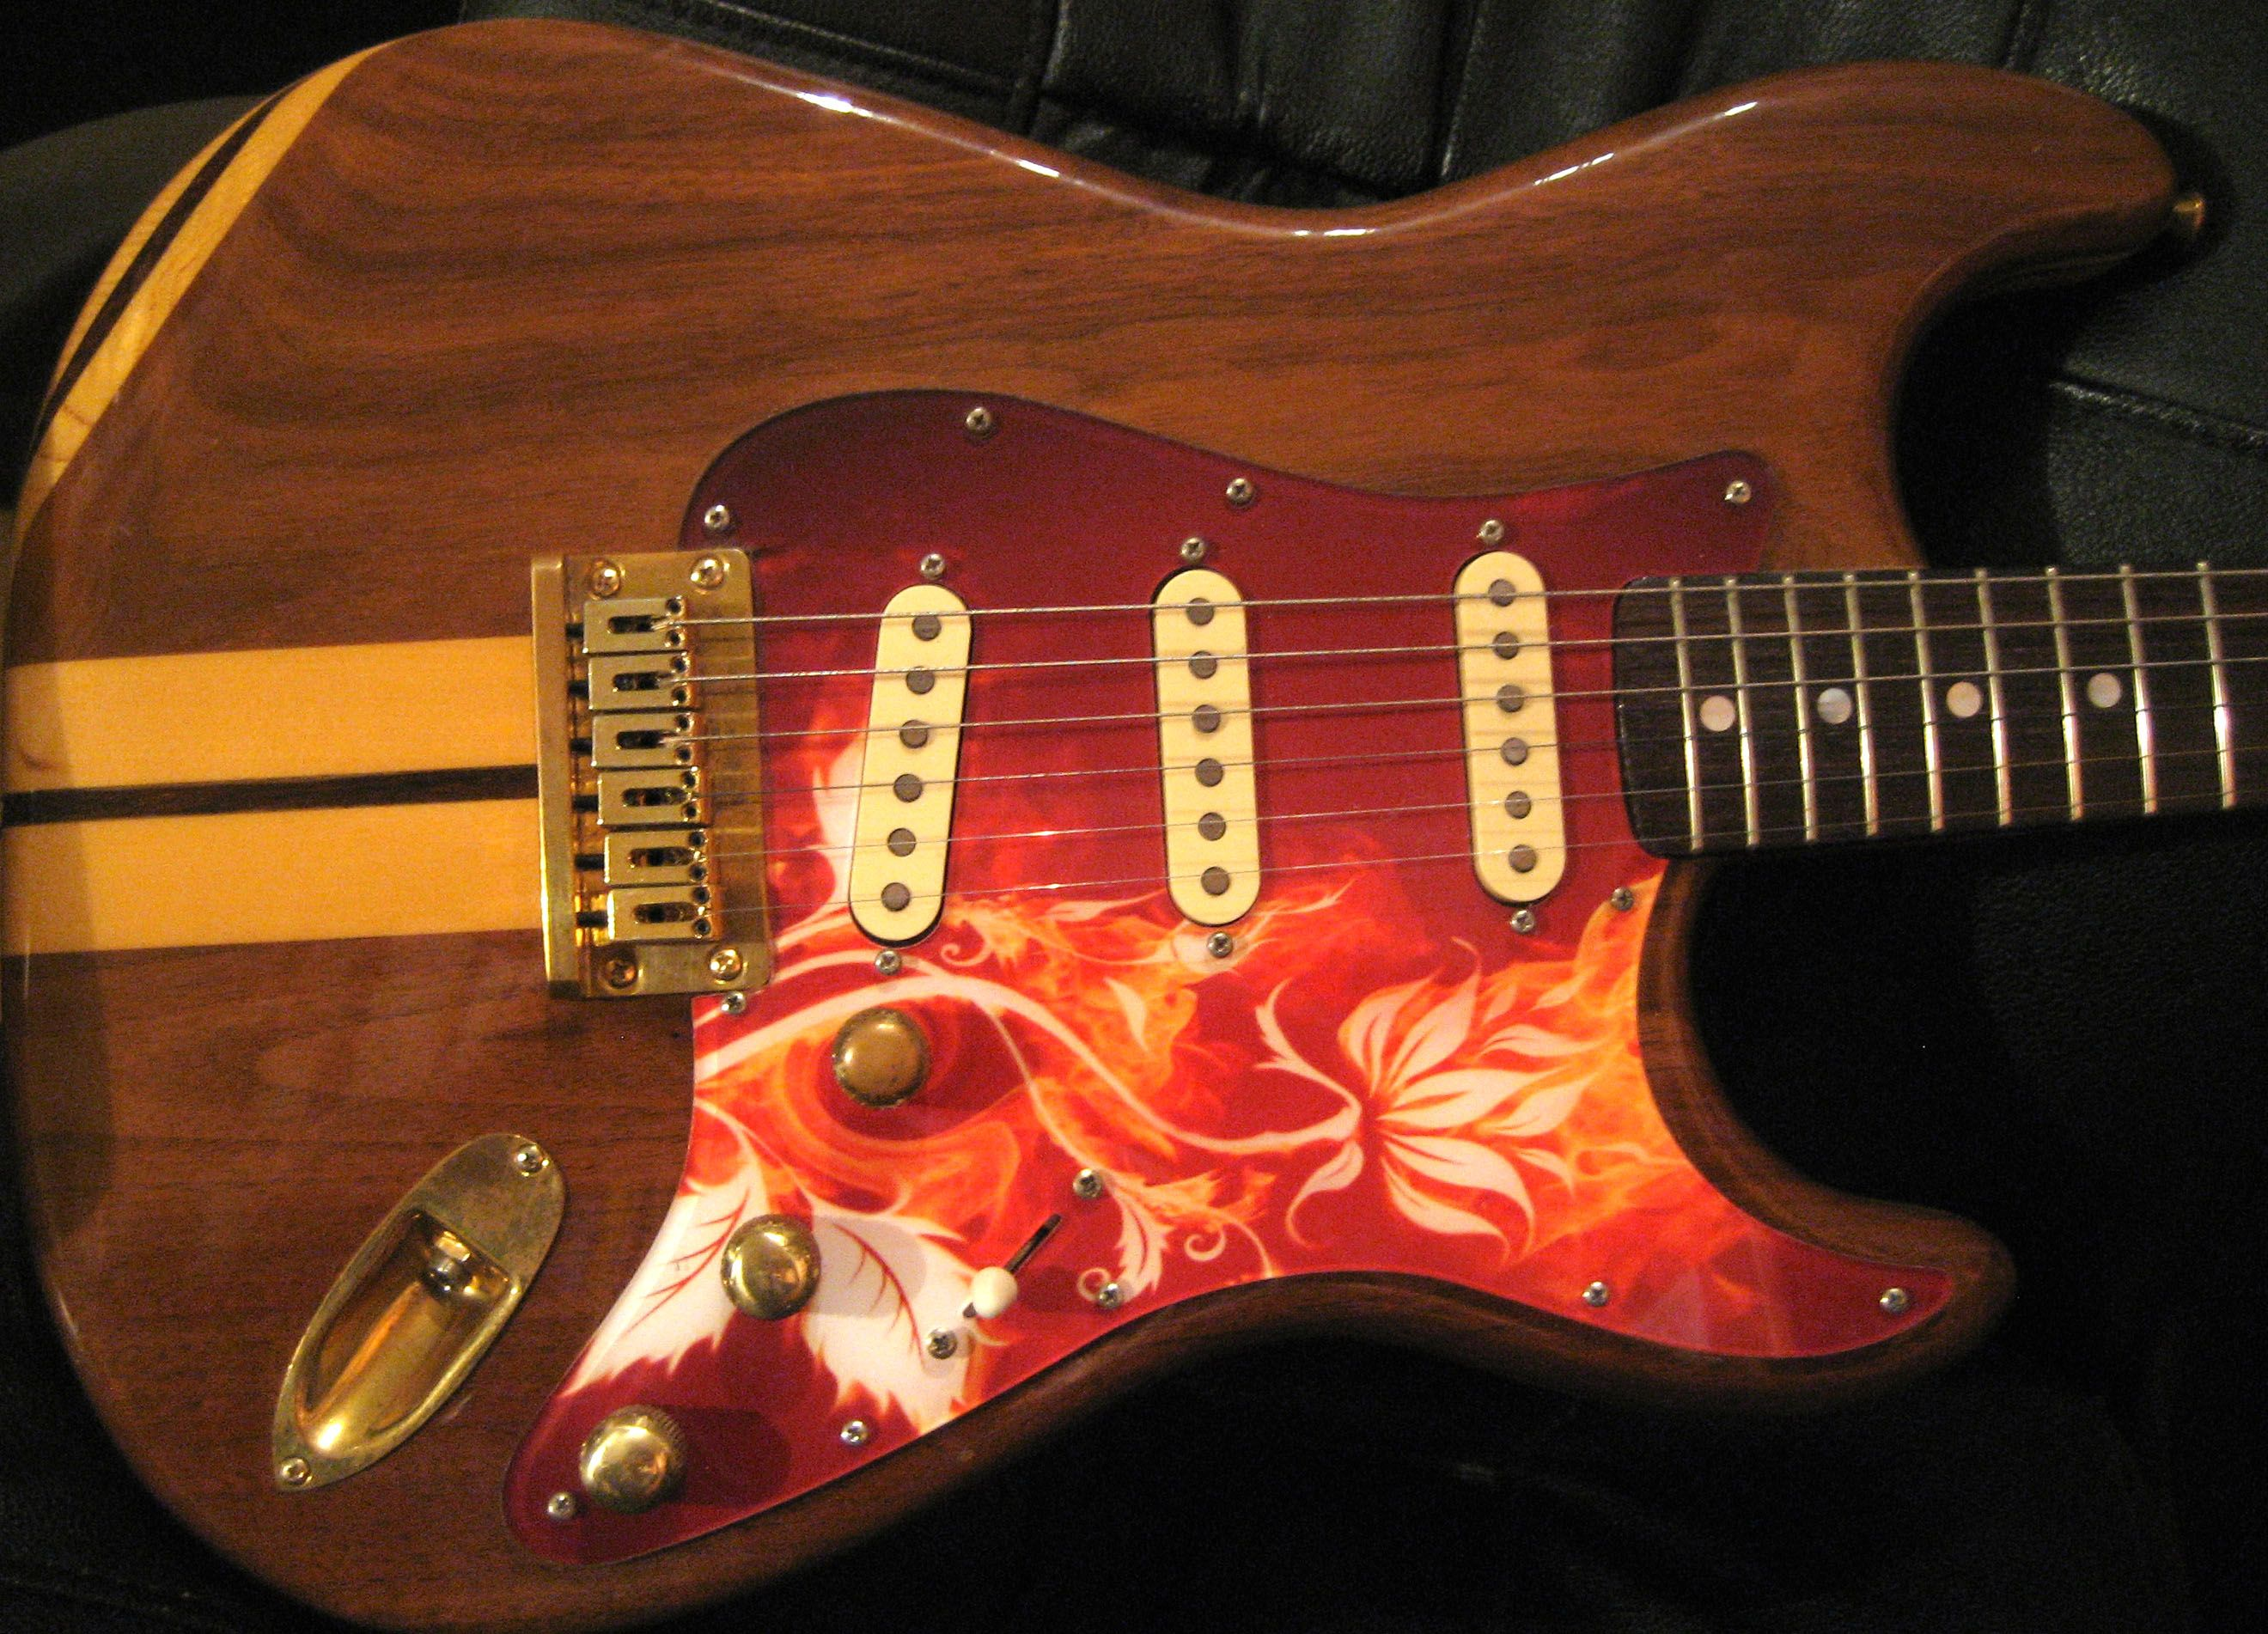 Custom flowers and flames axetremecreations pickguard on strat custom flowers and flames axetremecreations pickguard on strat style guitar sciox Images